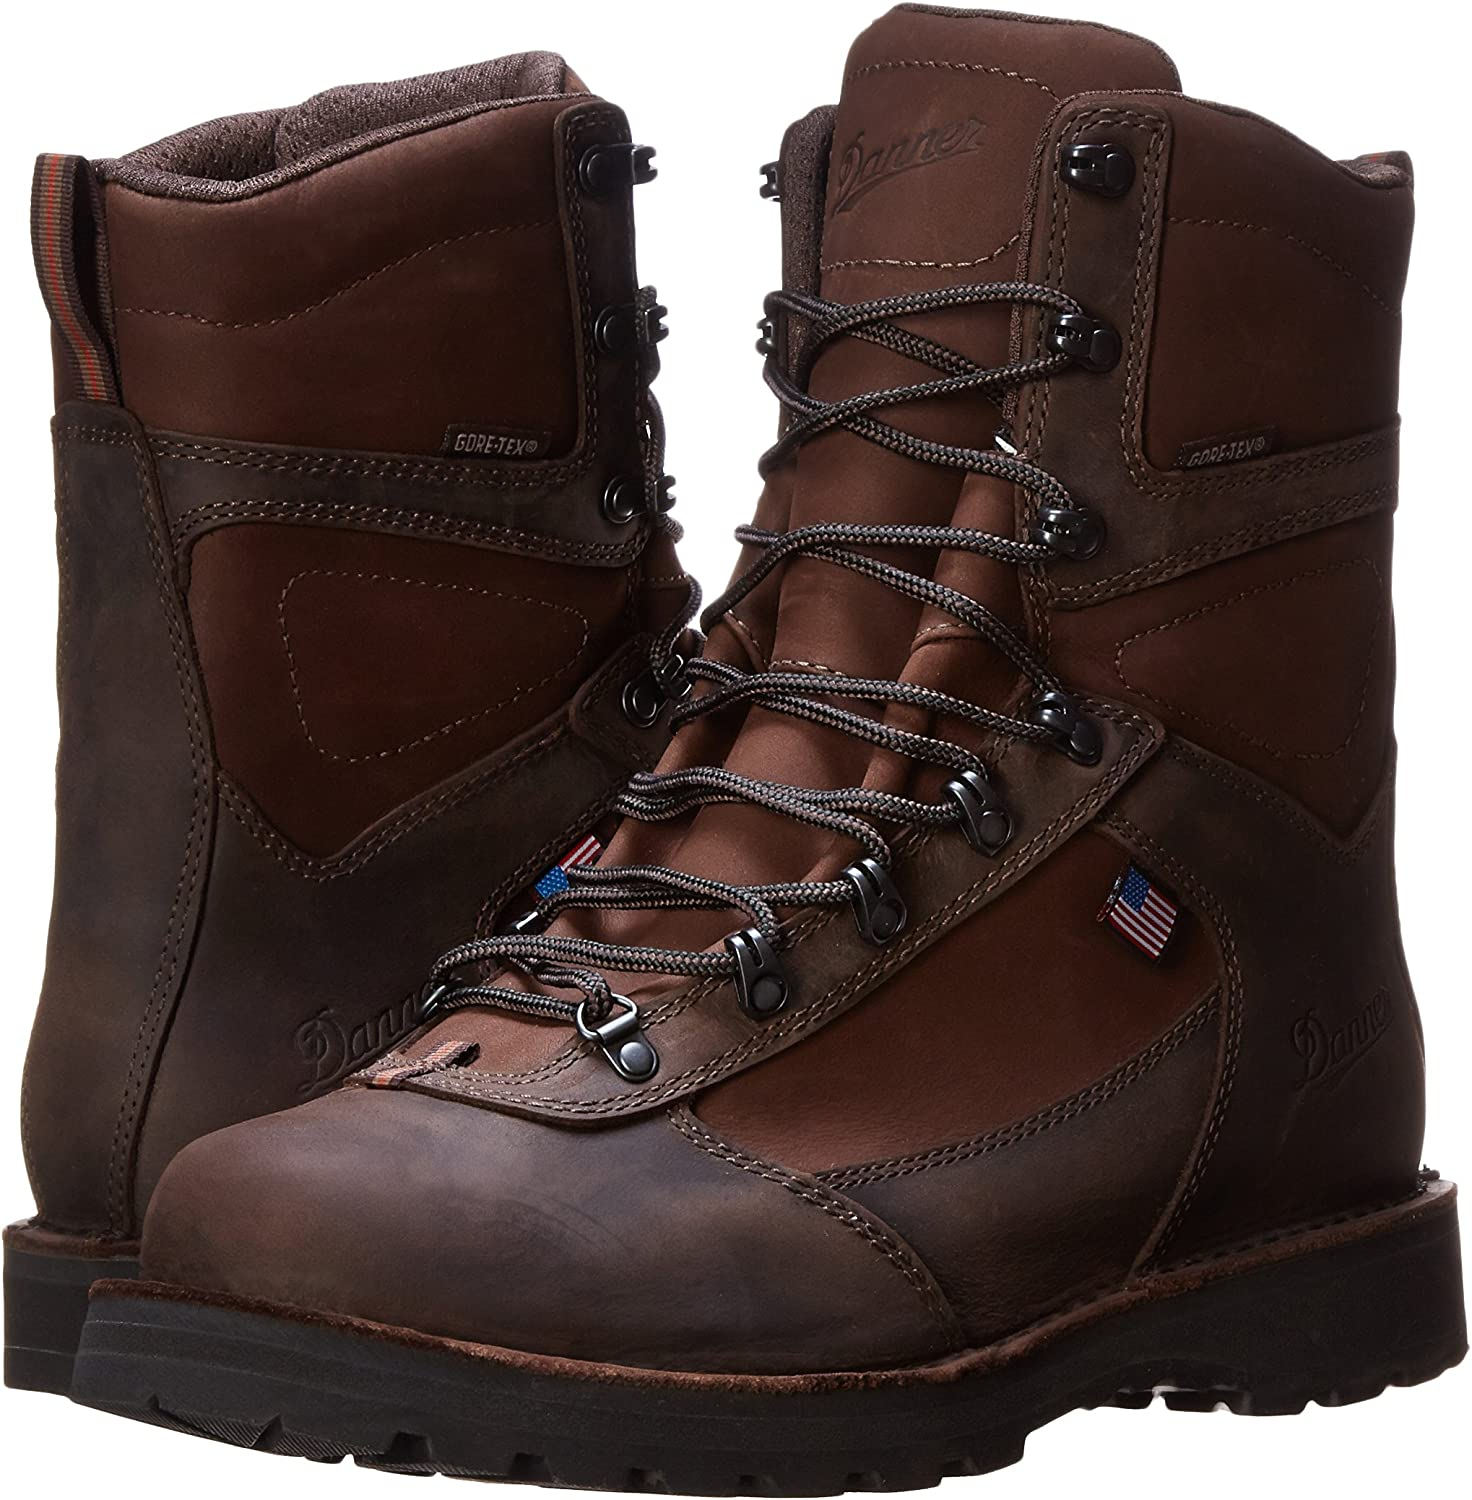 East Ridge 8 BR All Leather Hiking Boot